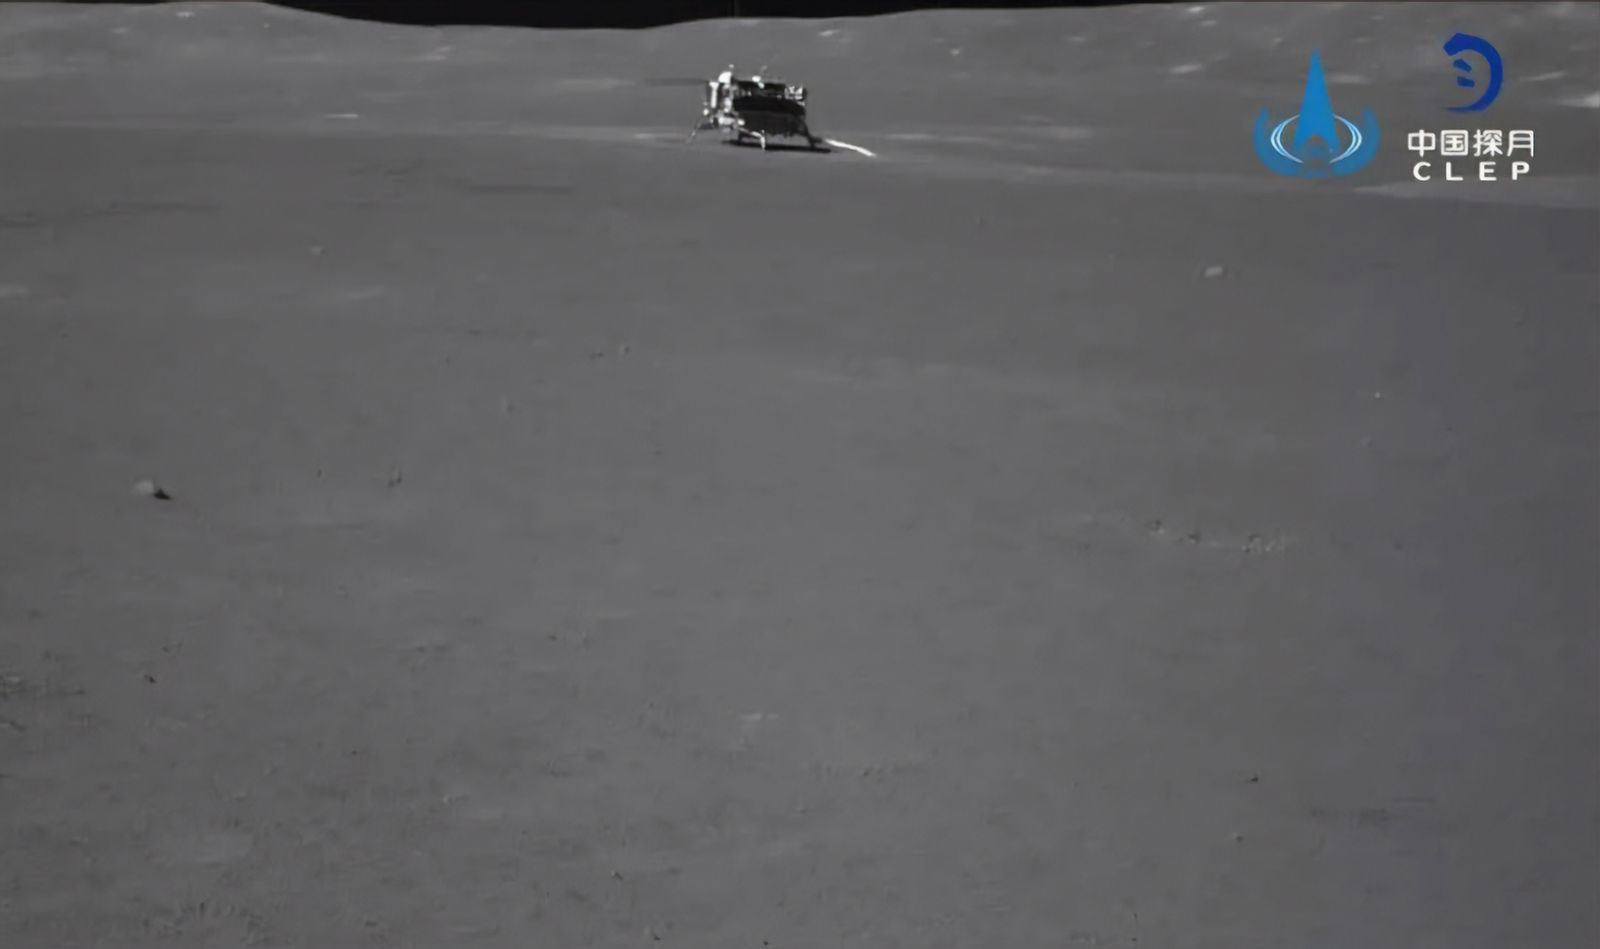 China's Chang'e-4 Lunar Lander Explores the Far Side of the Moon